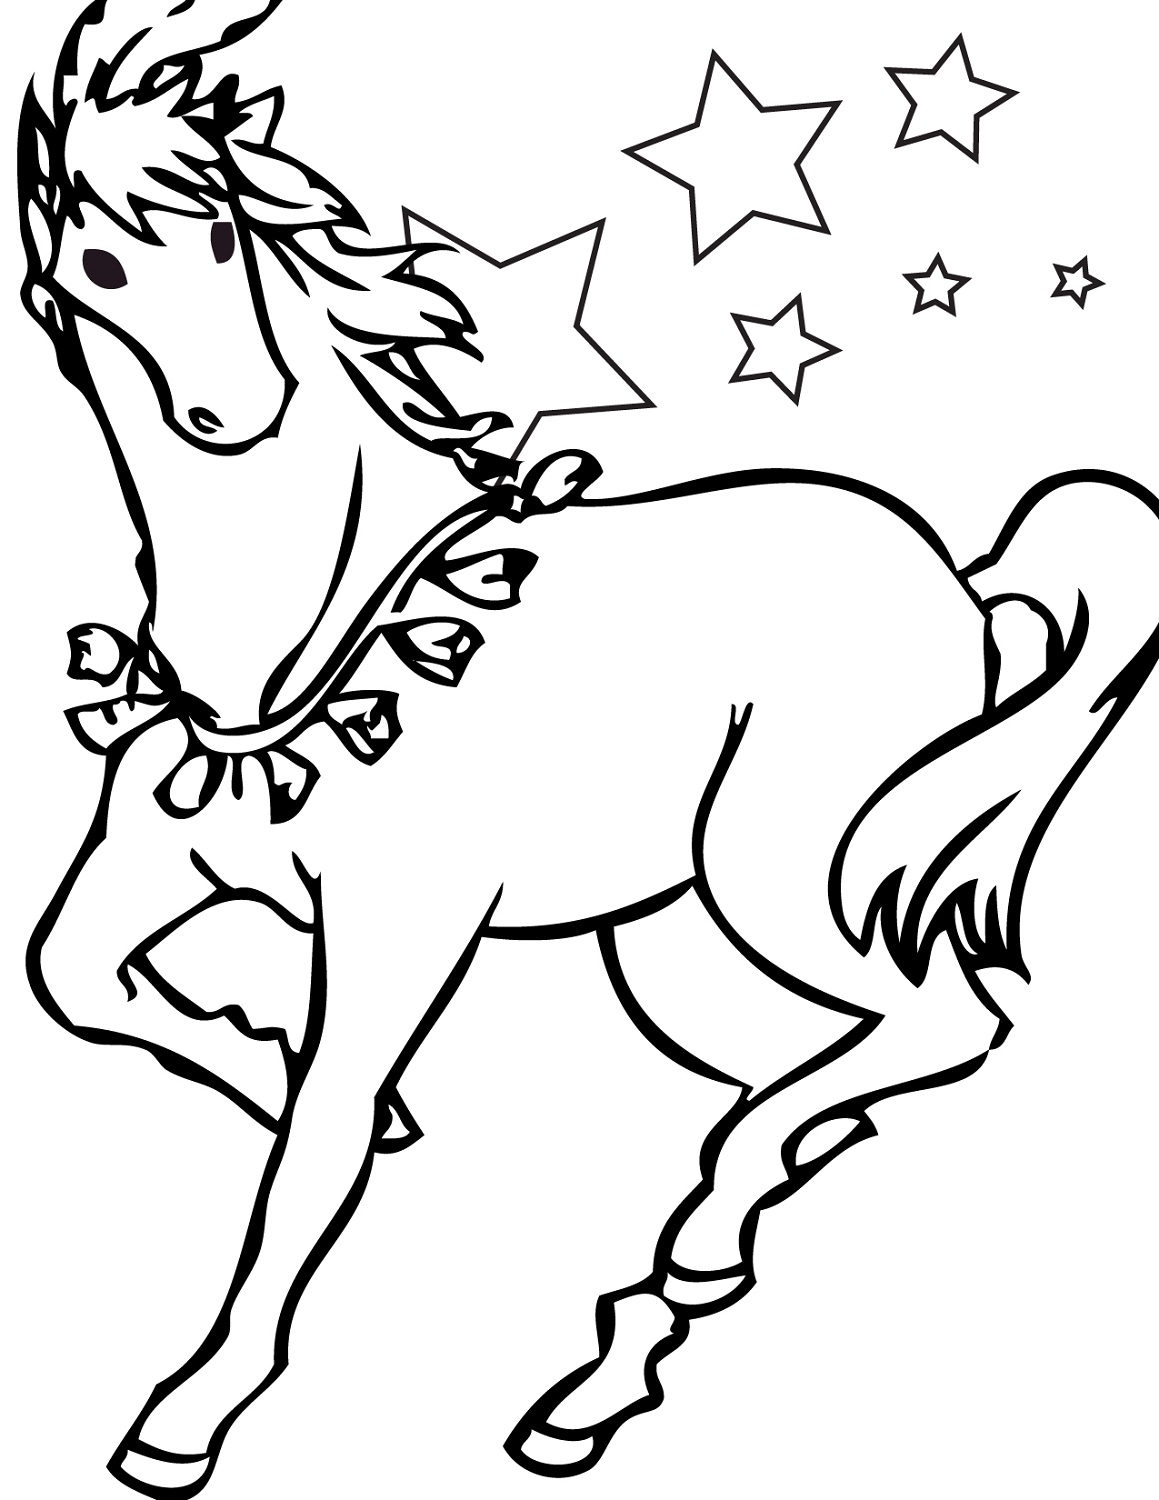 horses to print and color horse coloring pages preschool and kindergarten color print horses to and